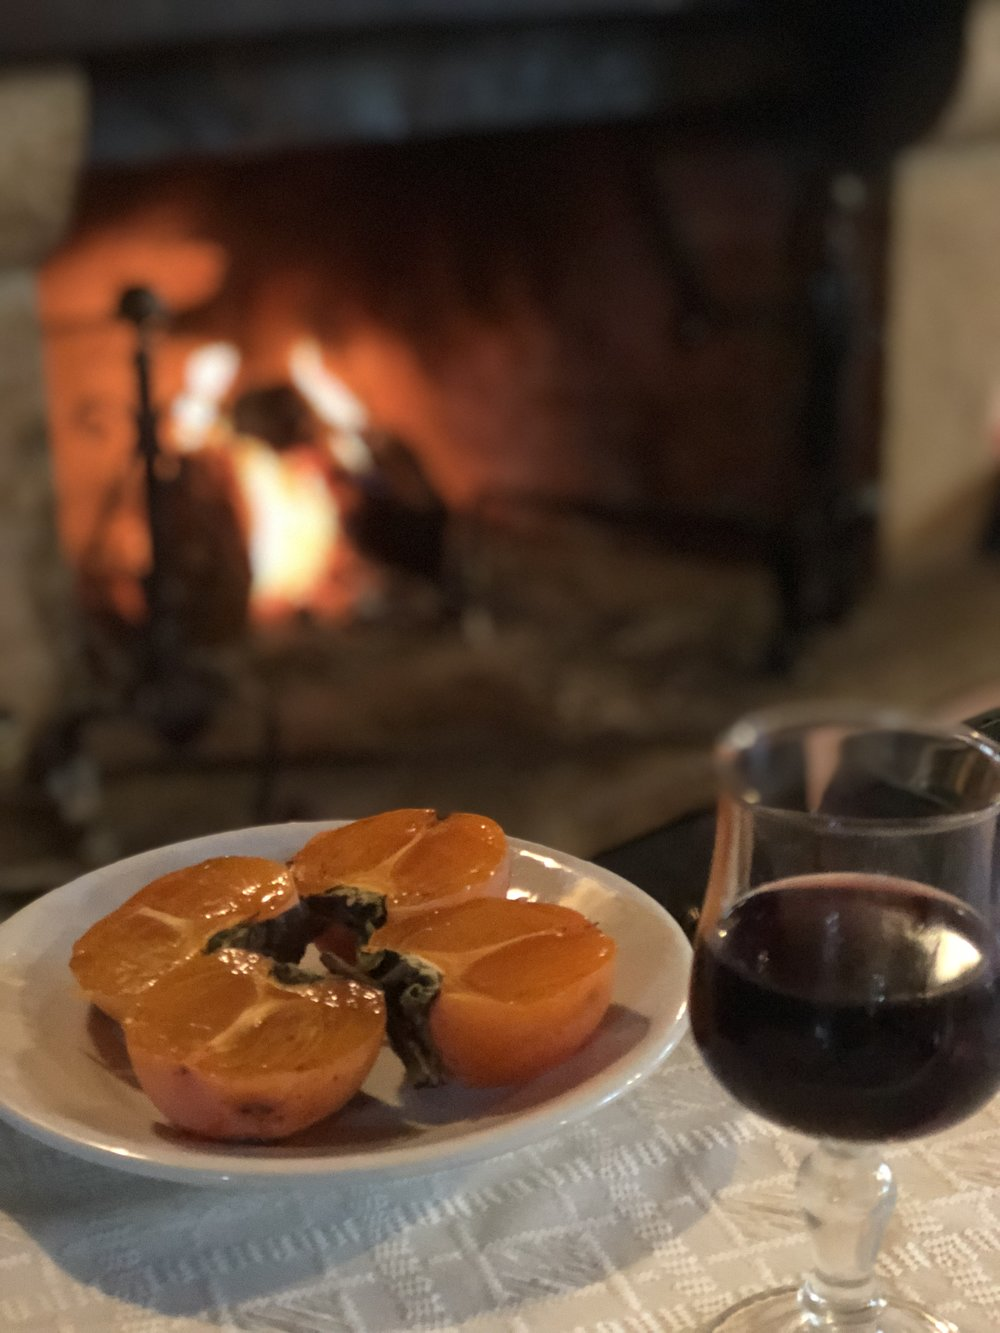 Persimmons and house-made wine for dessert at Agritourismo Bergi